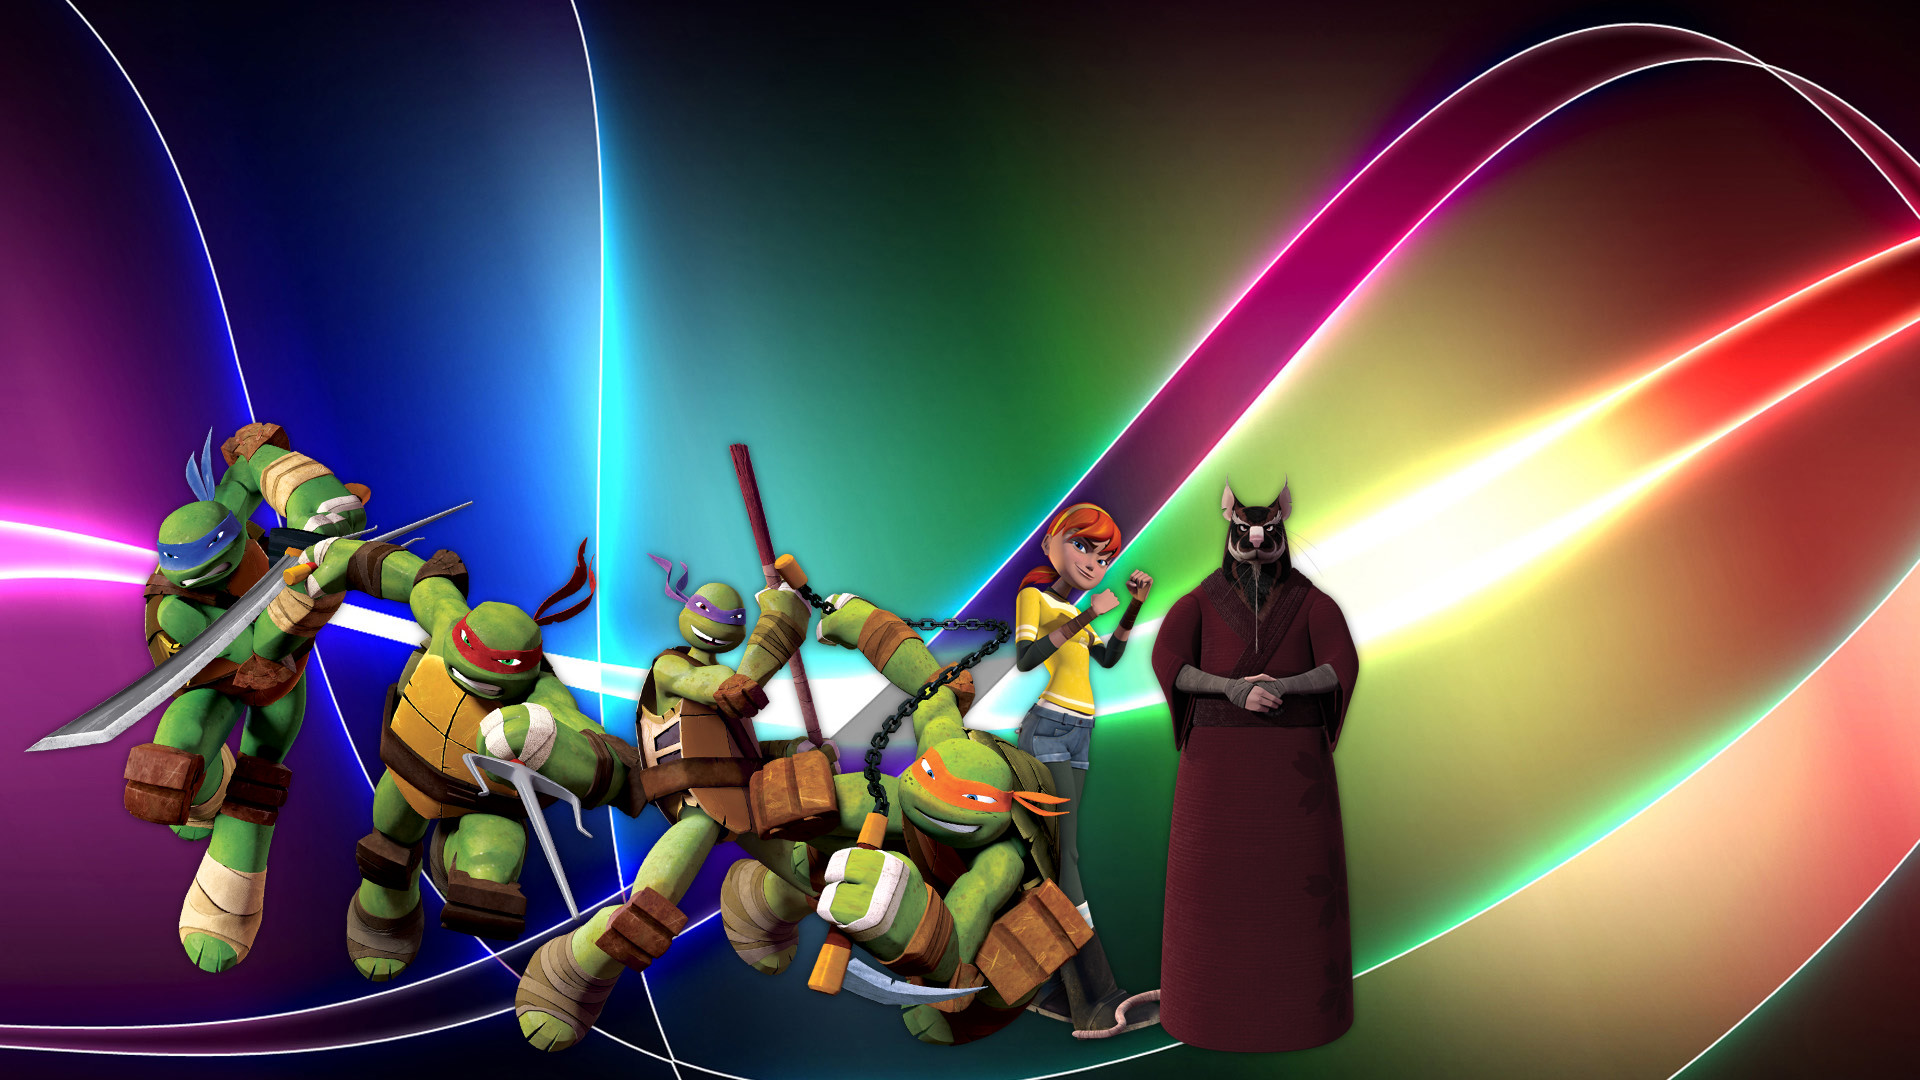 Tmnt Hd Wallpaper Posted By Sarah Thompson